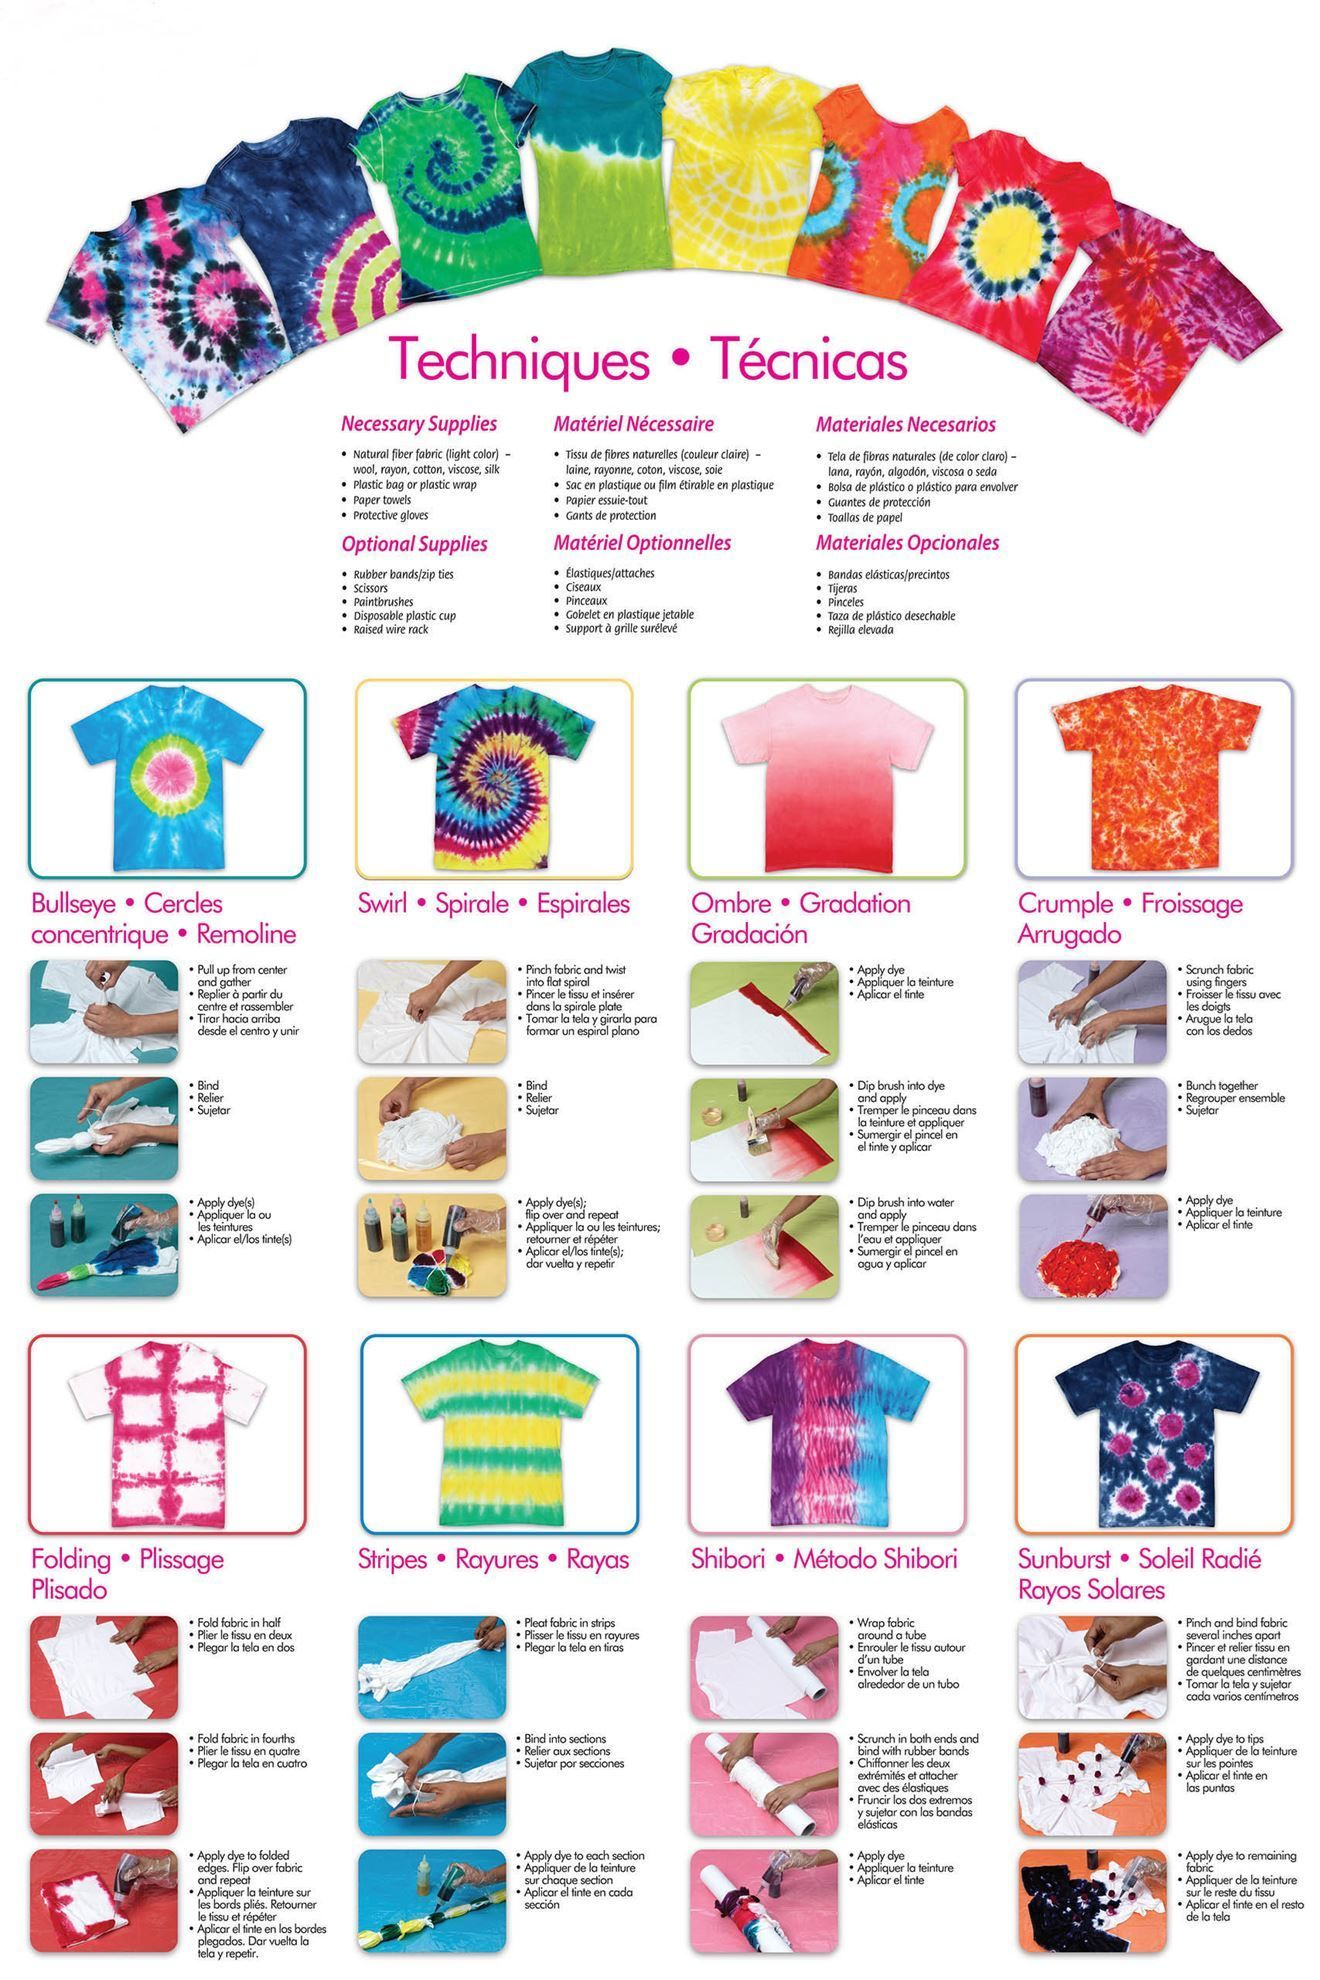 bf3c2517d964 www.tiedyeyoursummer.com content images thumbs 0000327 tie-dye-party-kit.